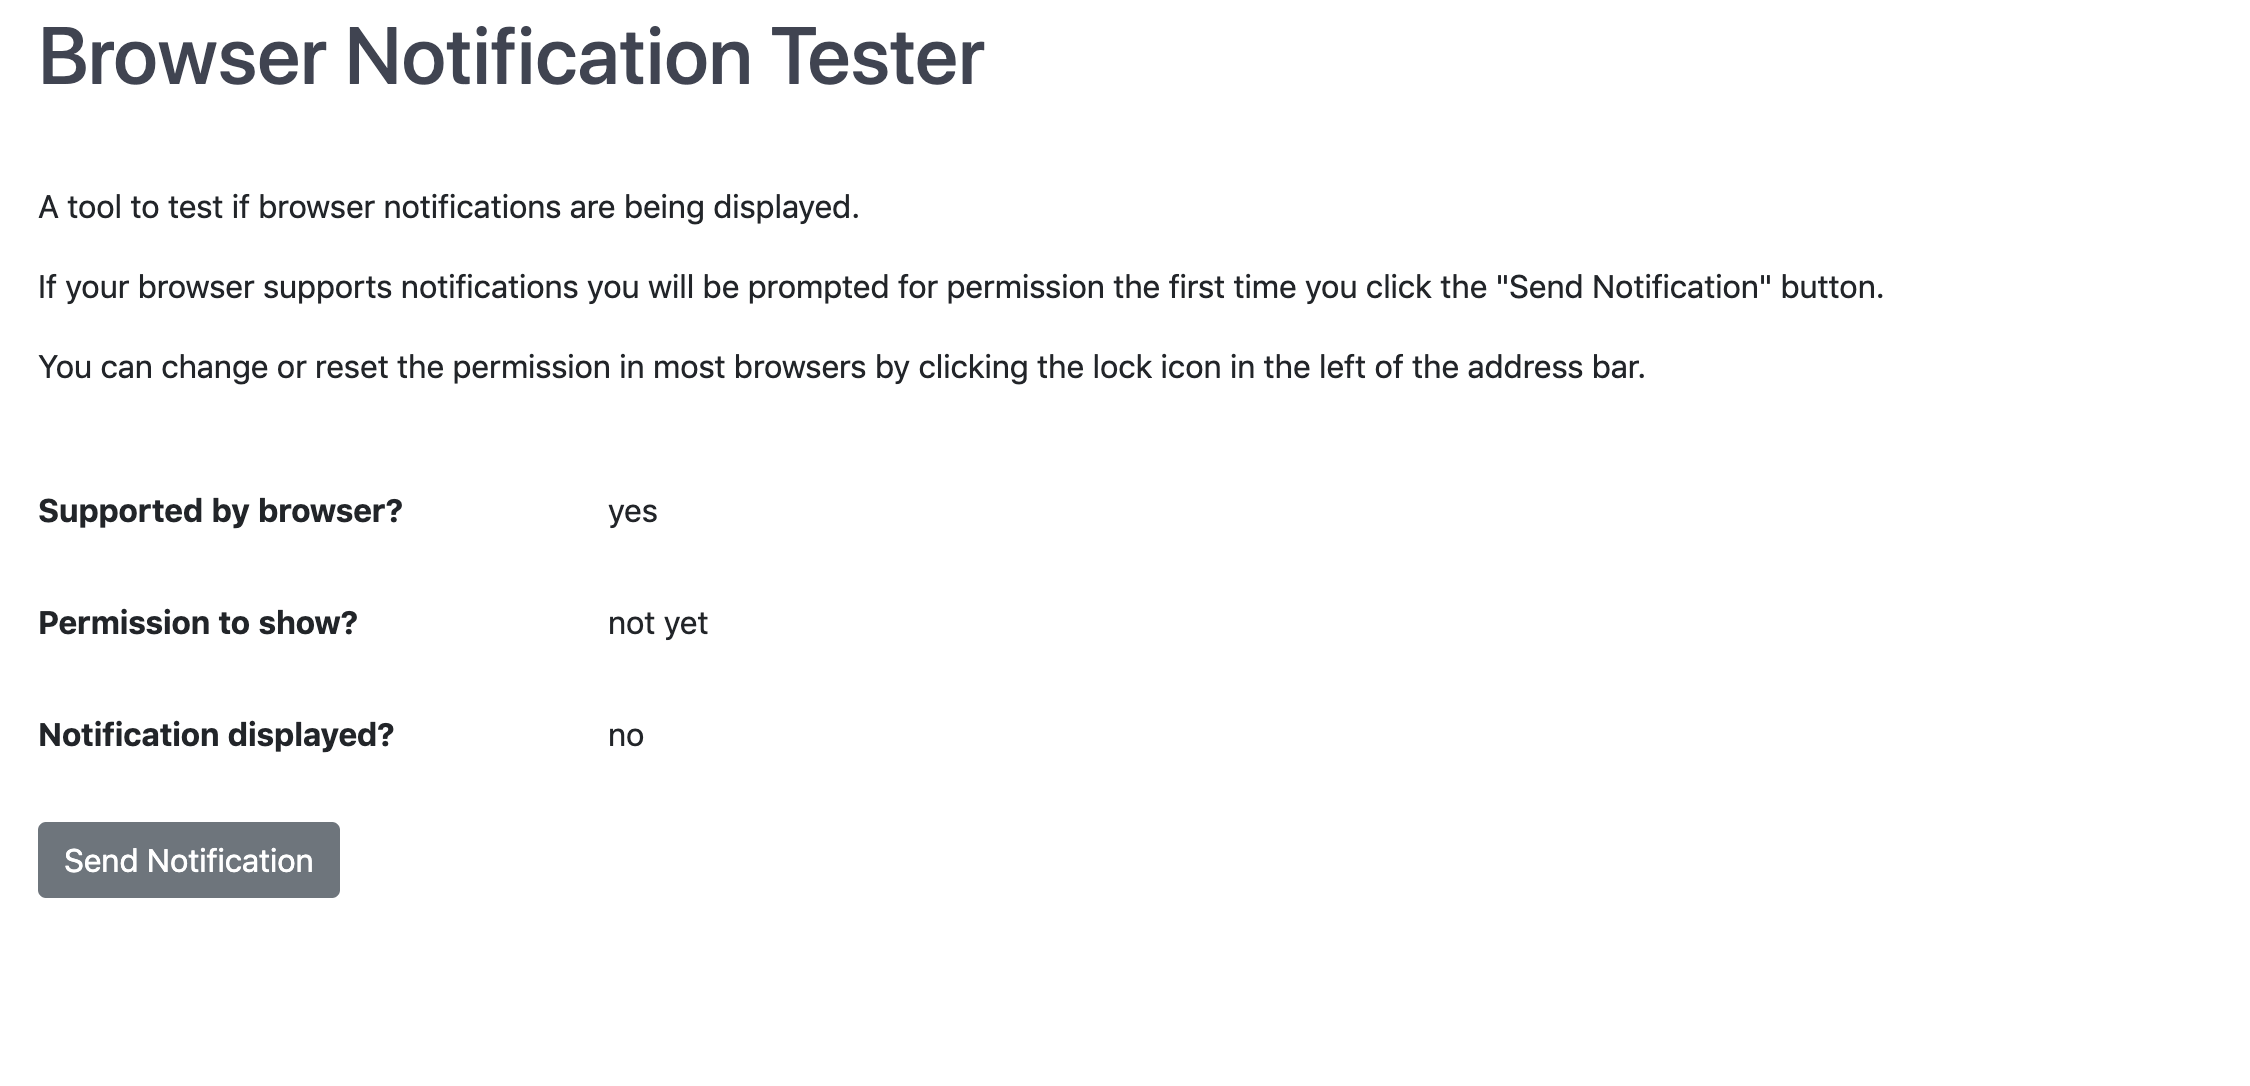 Browser Notification Tester screenshot